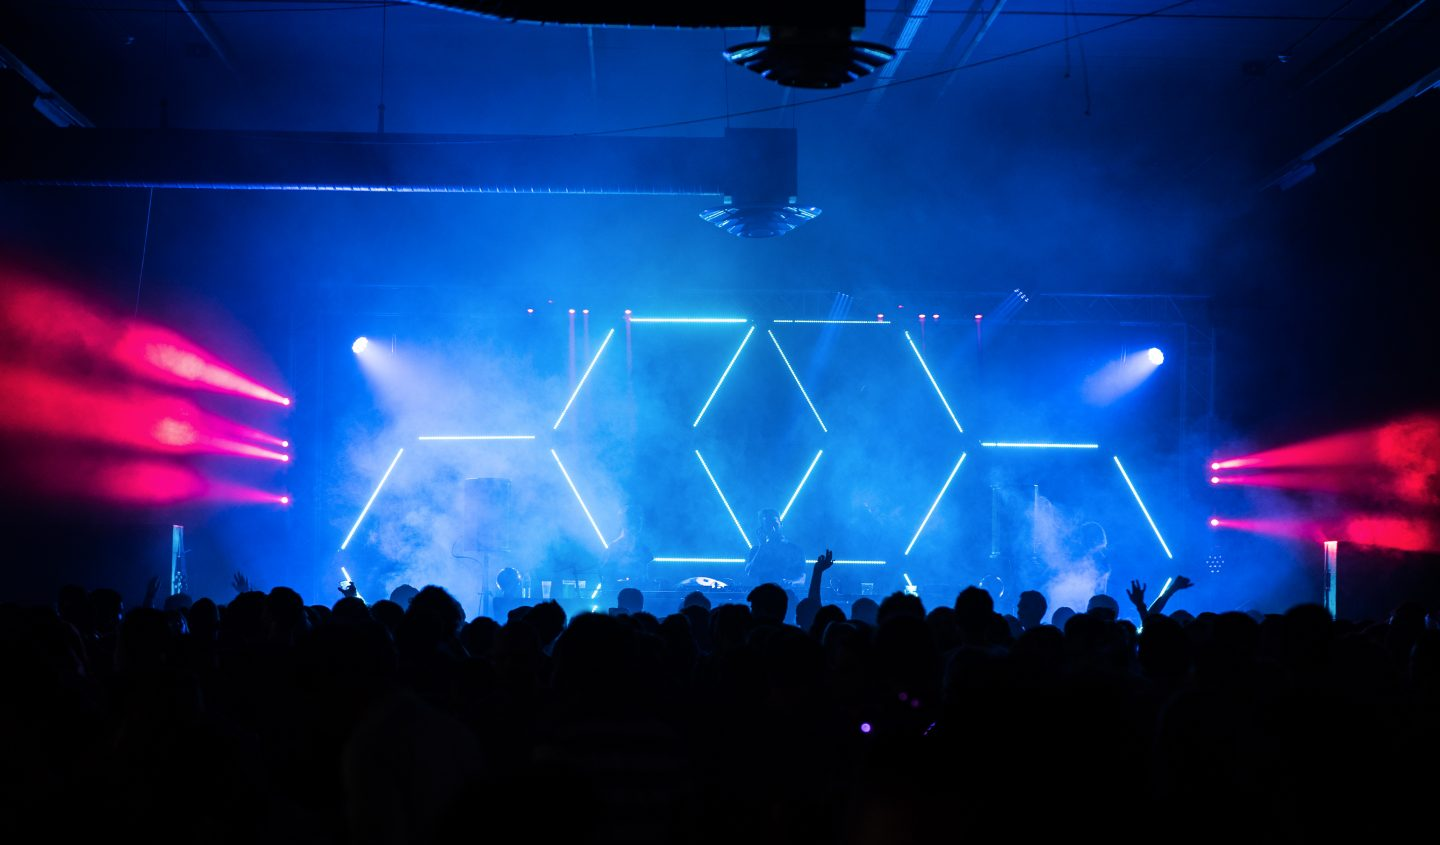 WSK - LED Stage Design @ Big Bang Theory 2015 - Paris - 24